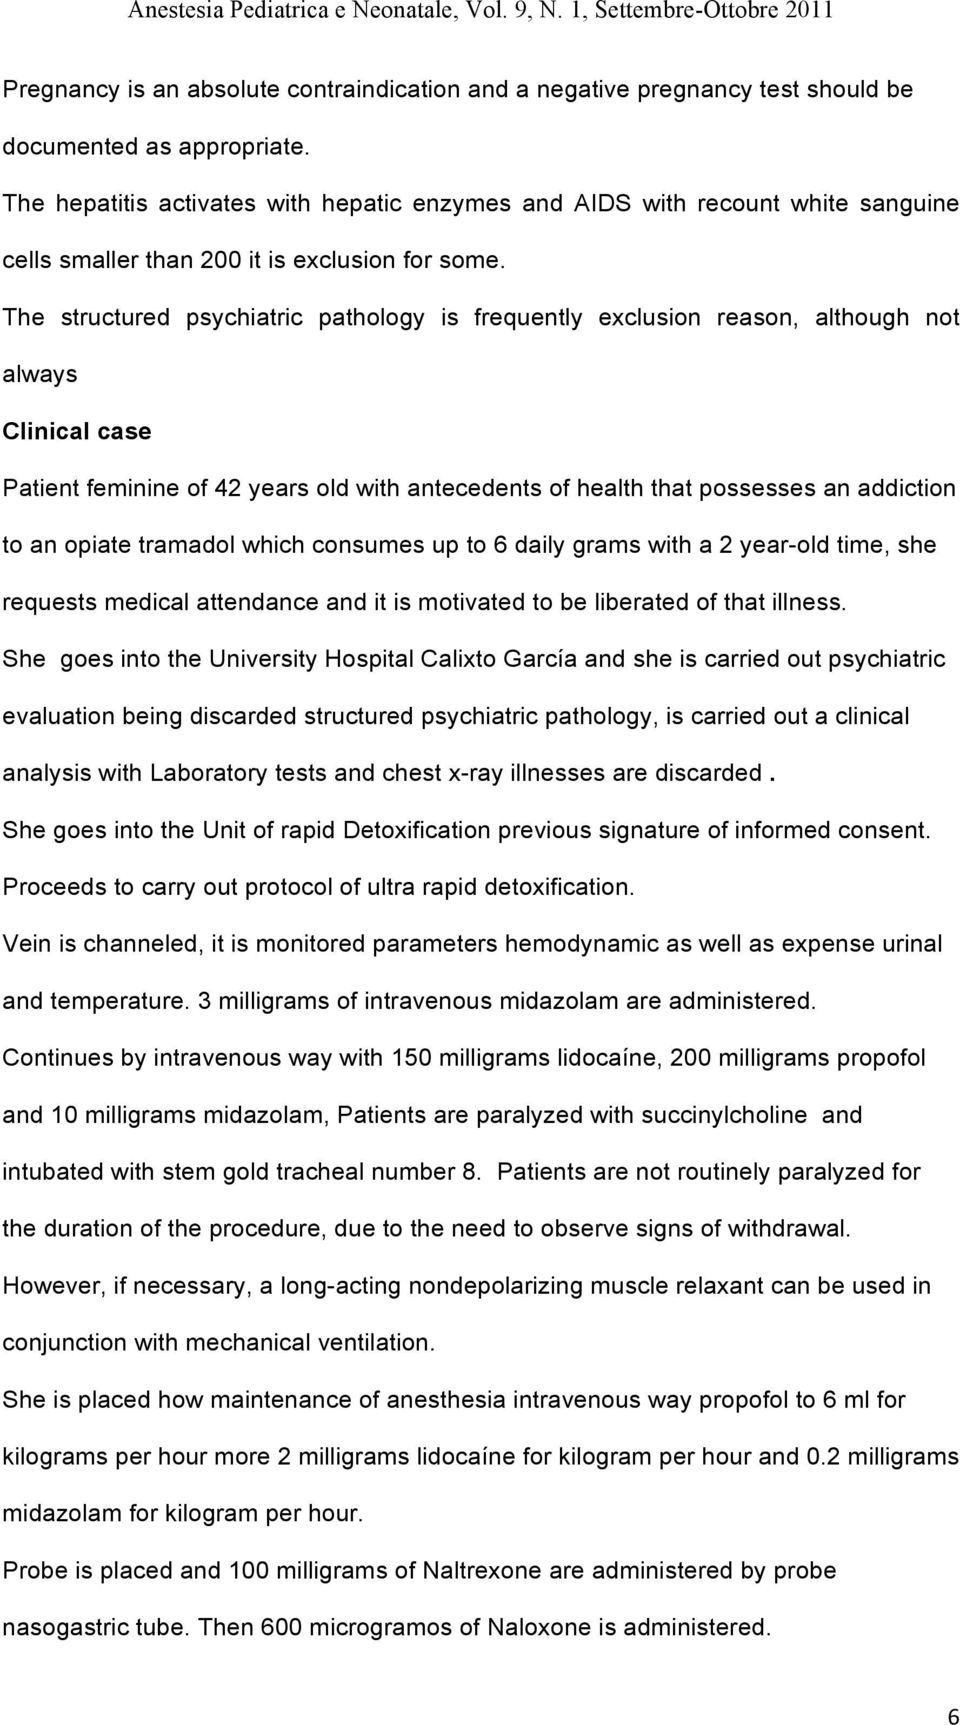 The structured psychiatric pathology is frequently exclusion reason, although not always Clinical case Patient feminine of 42 years old with antecedents of health that possesses an addiction to an